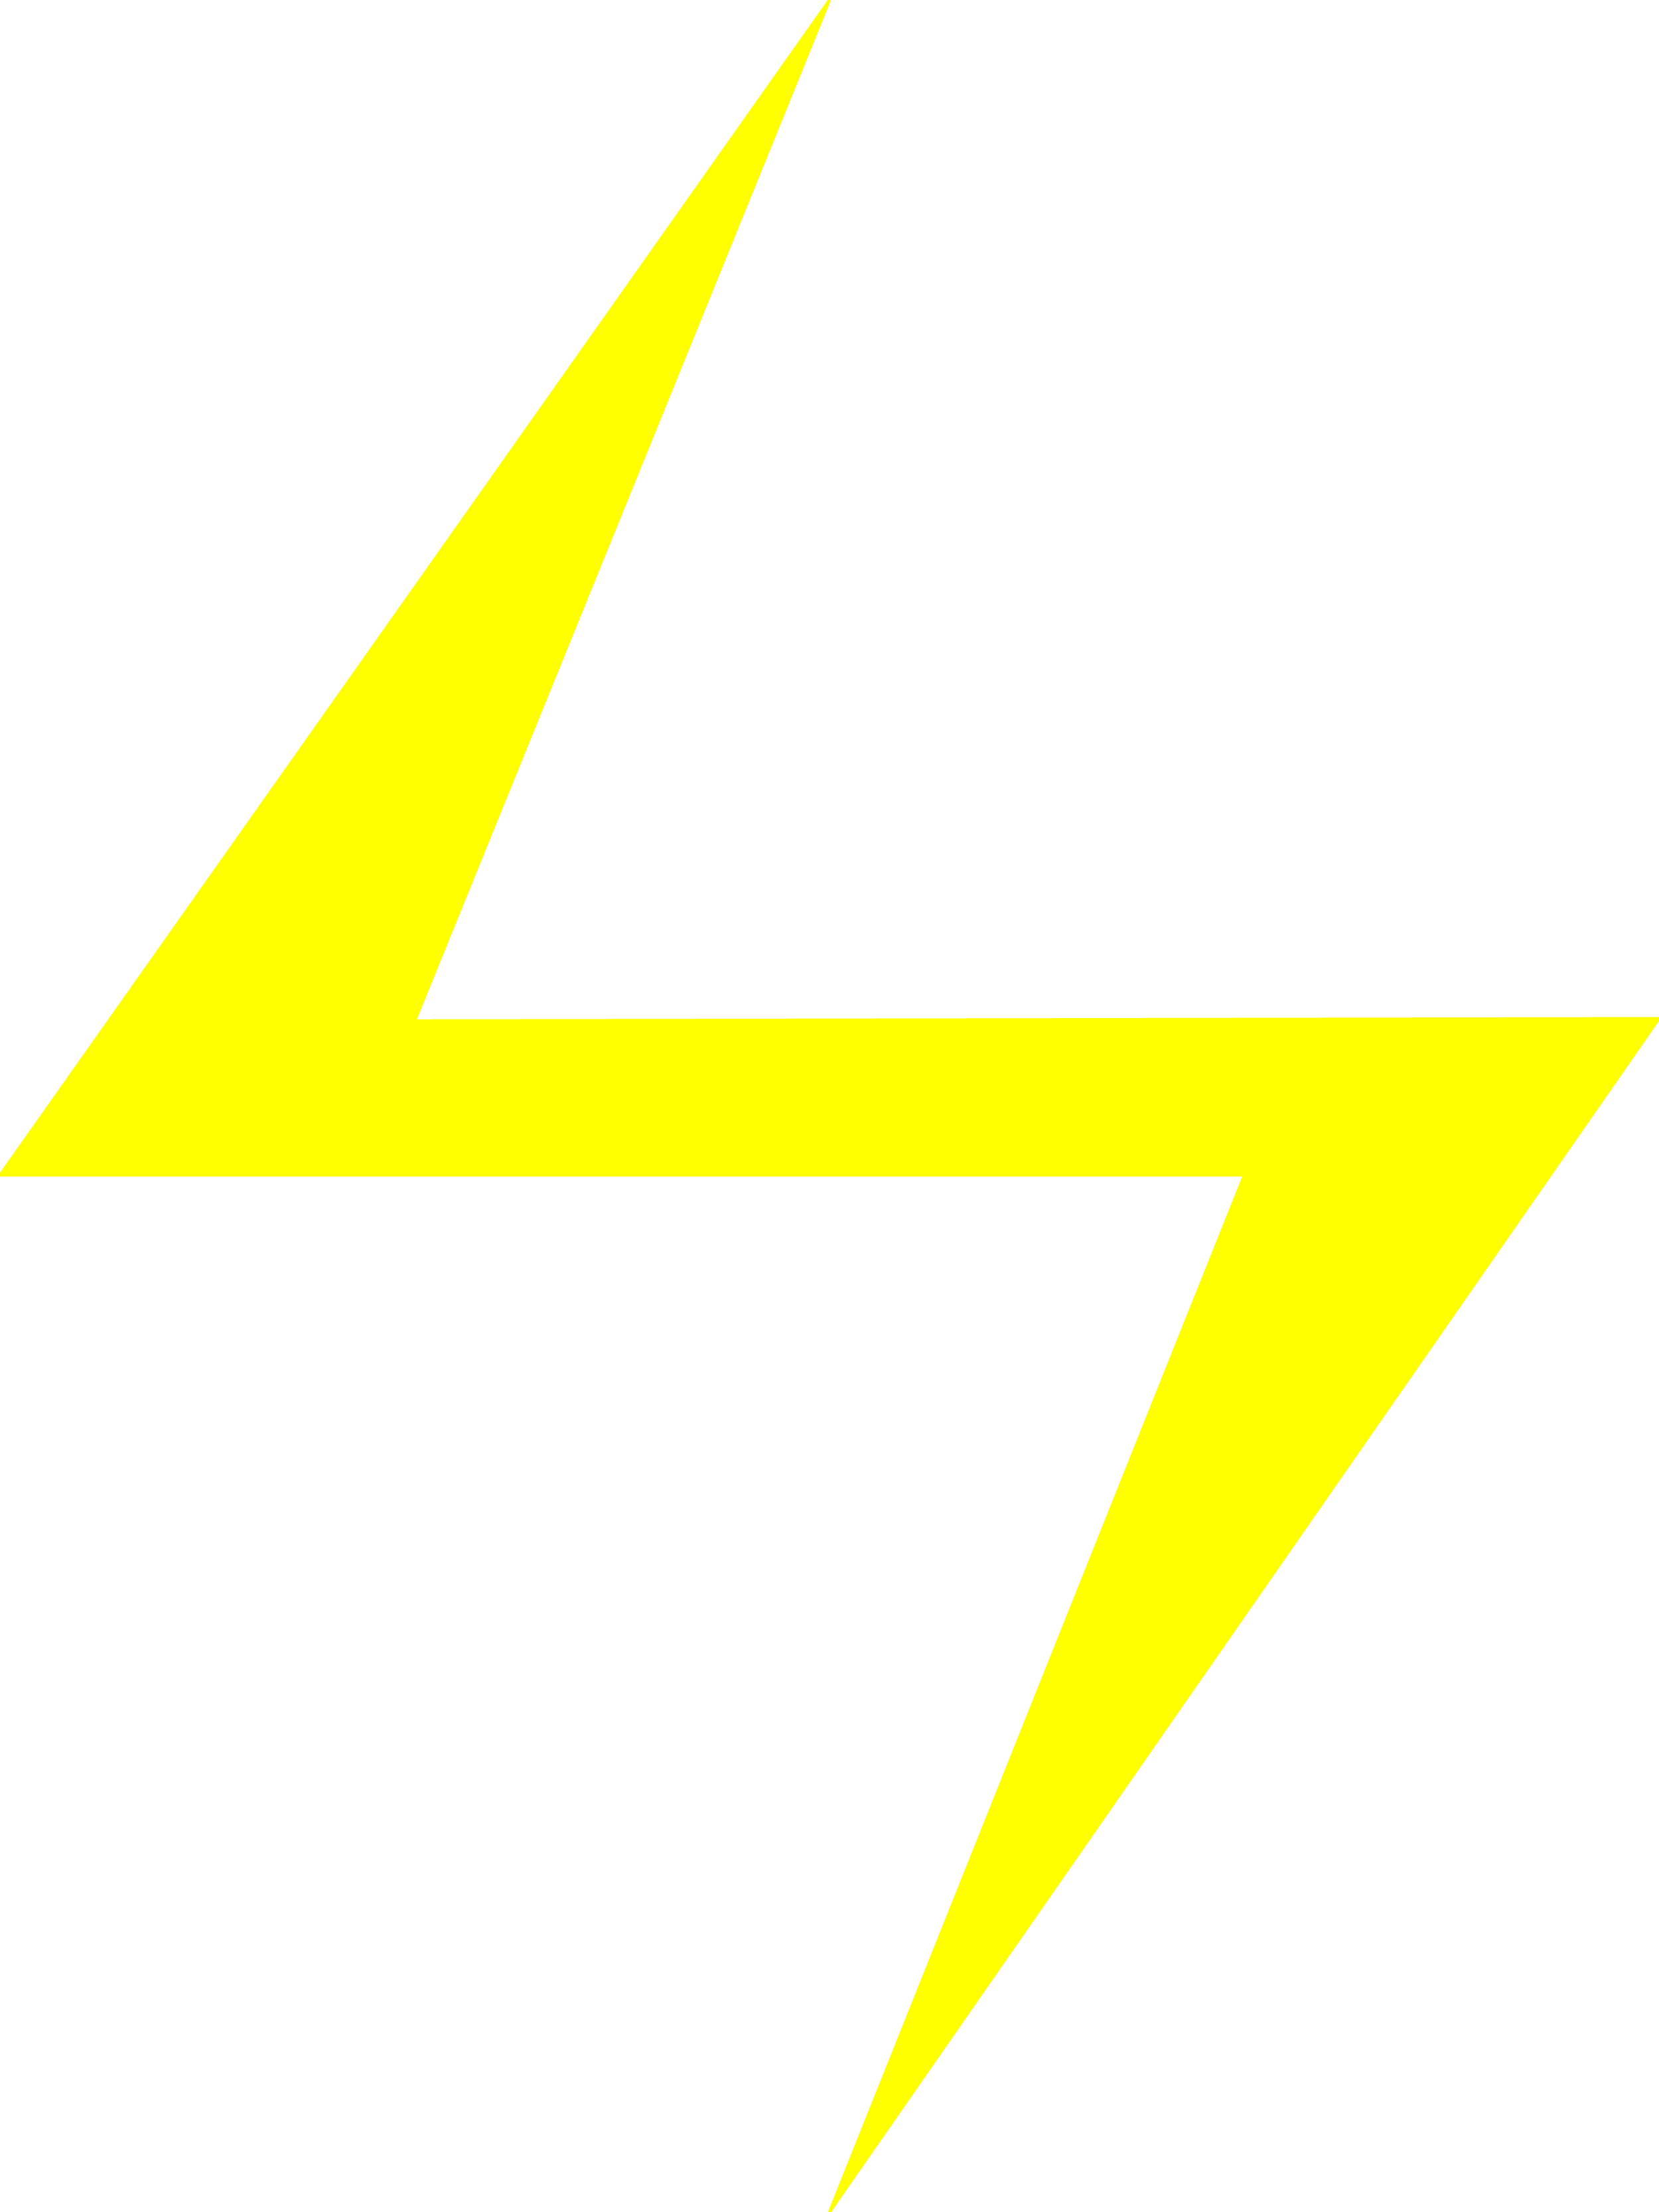 Ms marvel logo png. File yellow bolt wikipedia